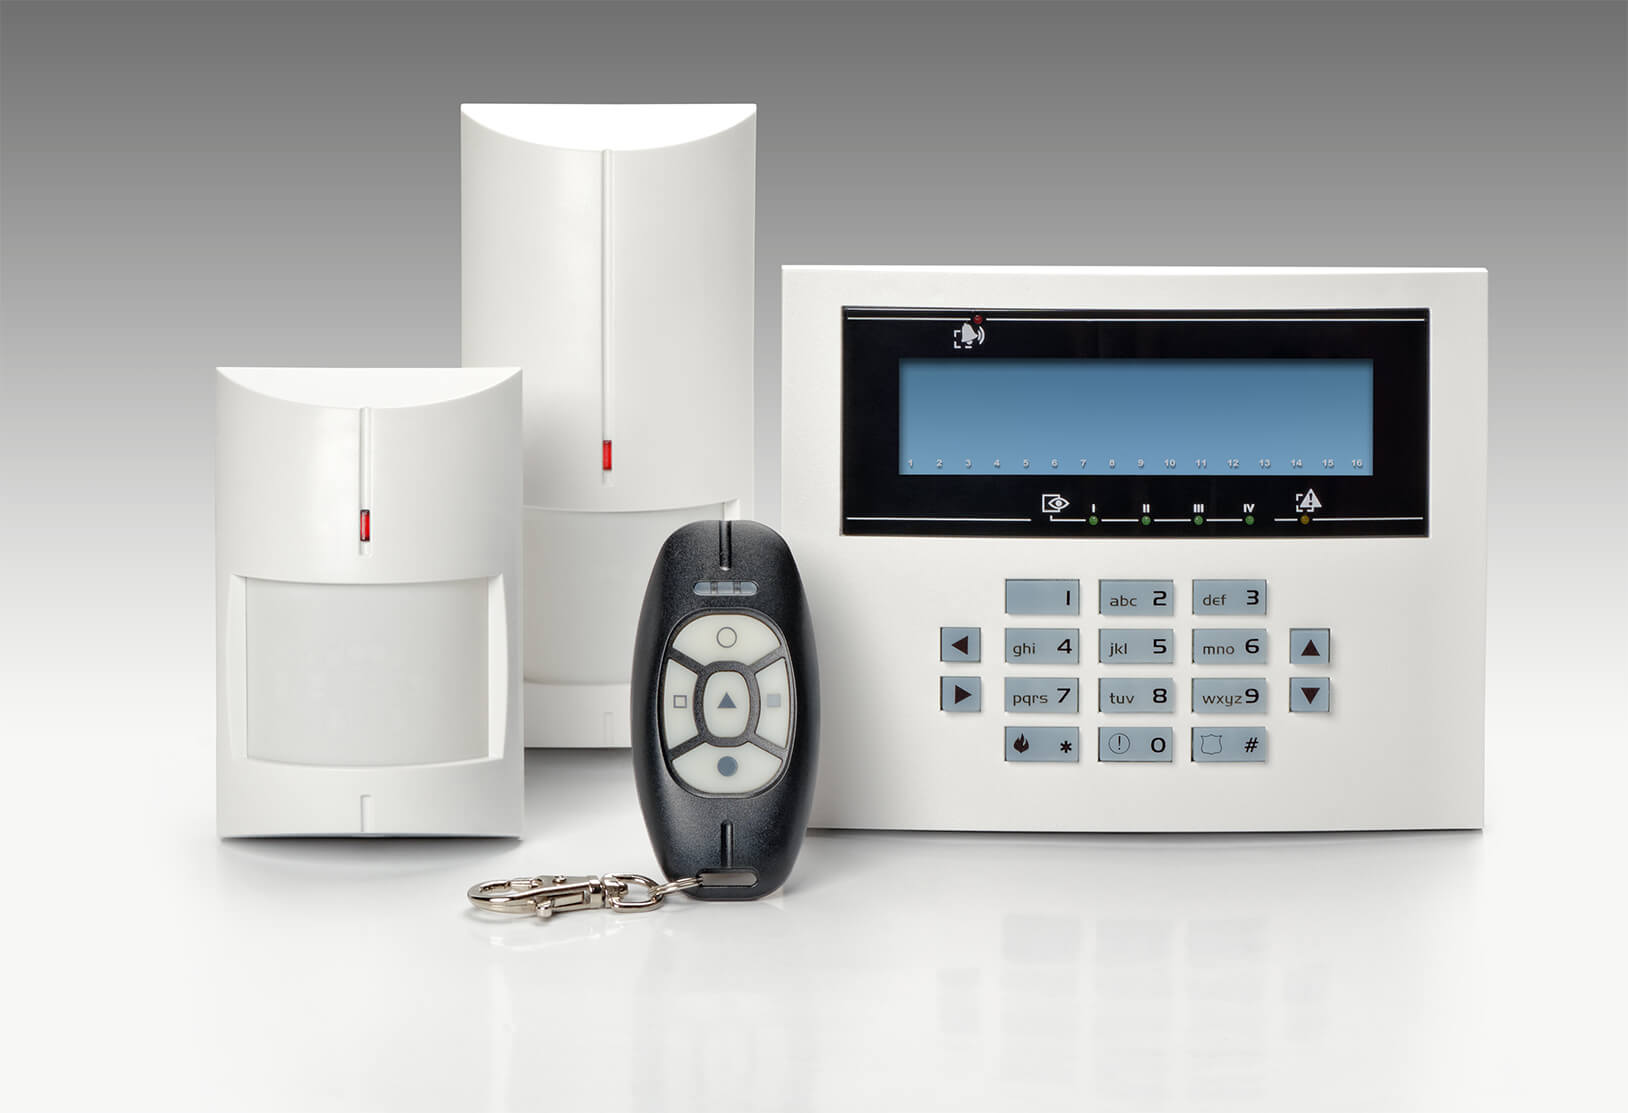 Business & Residential NSI / NACOSS Approved Burglar Alarms In Nunhead SE15 - Local Nunhead SE15 security company.Call 02078872244 - Dedicated to Safety & Security. Companies, shops and homes ..